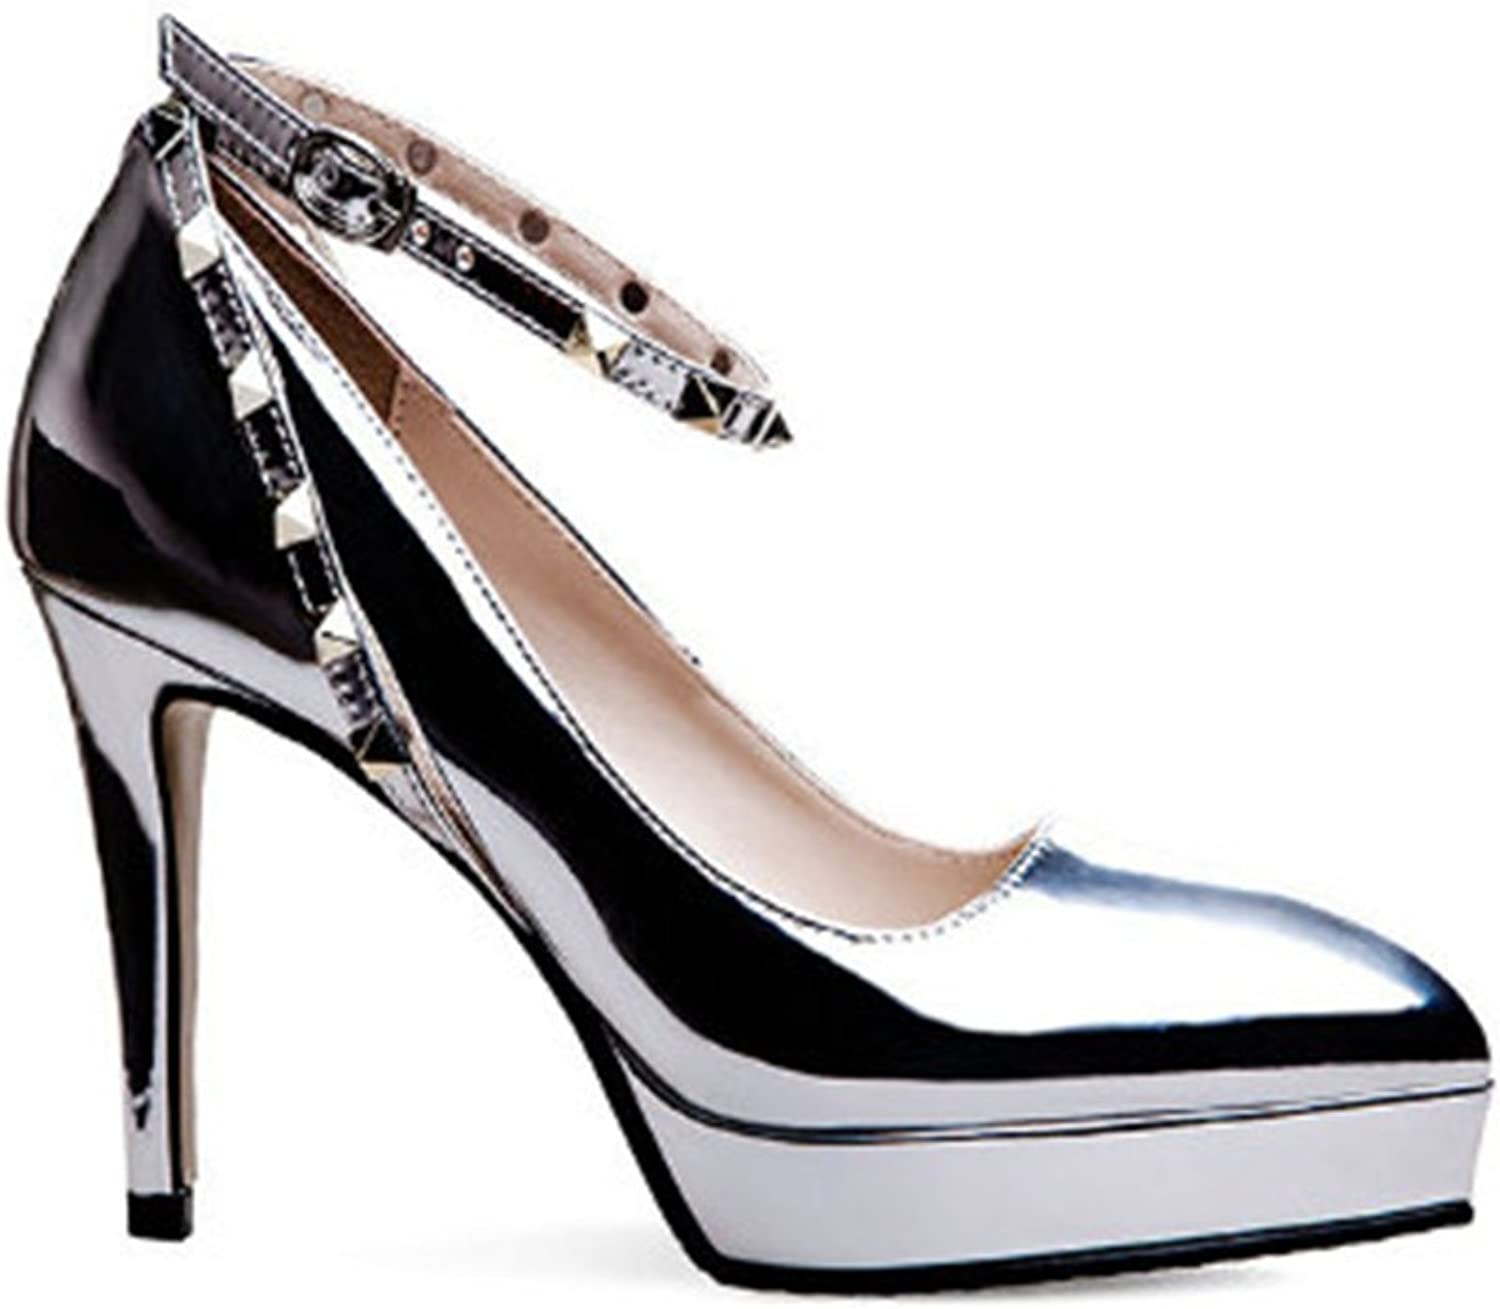 MIKA HOM Women's Sexy Floral Print Pointed Toe Buckle Ankle Strap Stiletto High Heel Pumps shoes